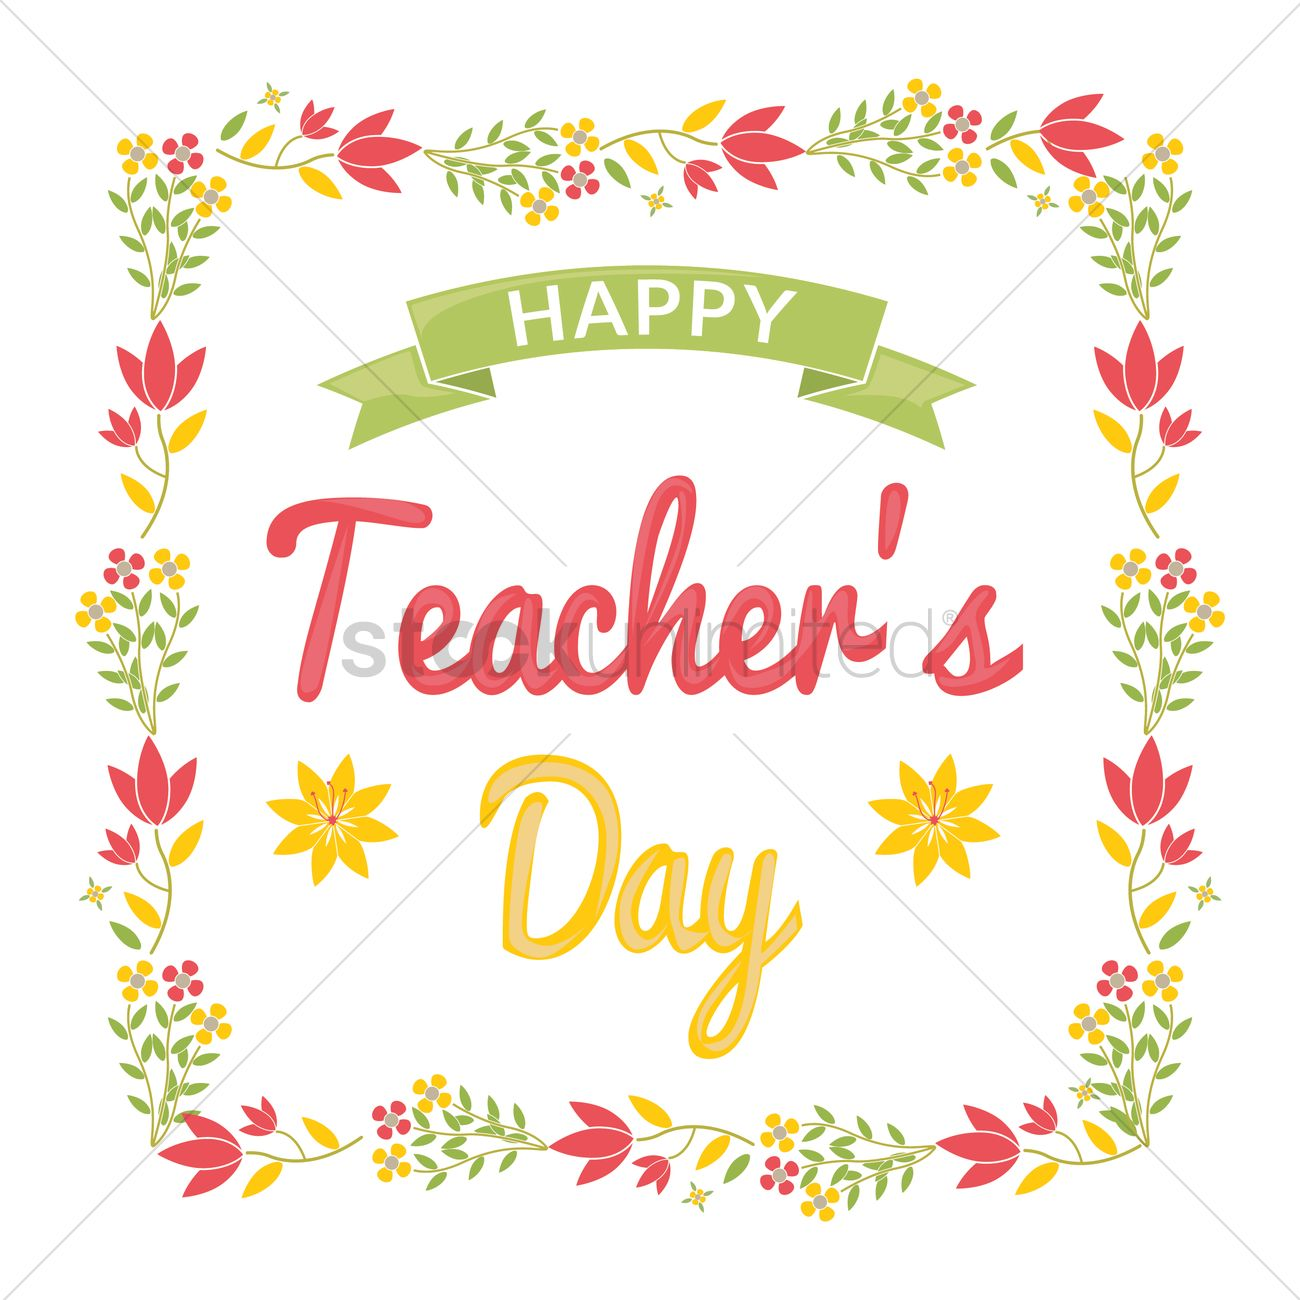 Happy Teachers Day Design Vector Image 1968688 Stockunlimited